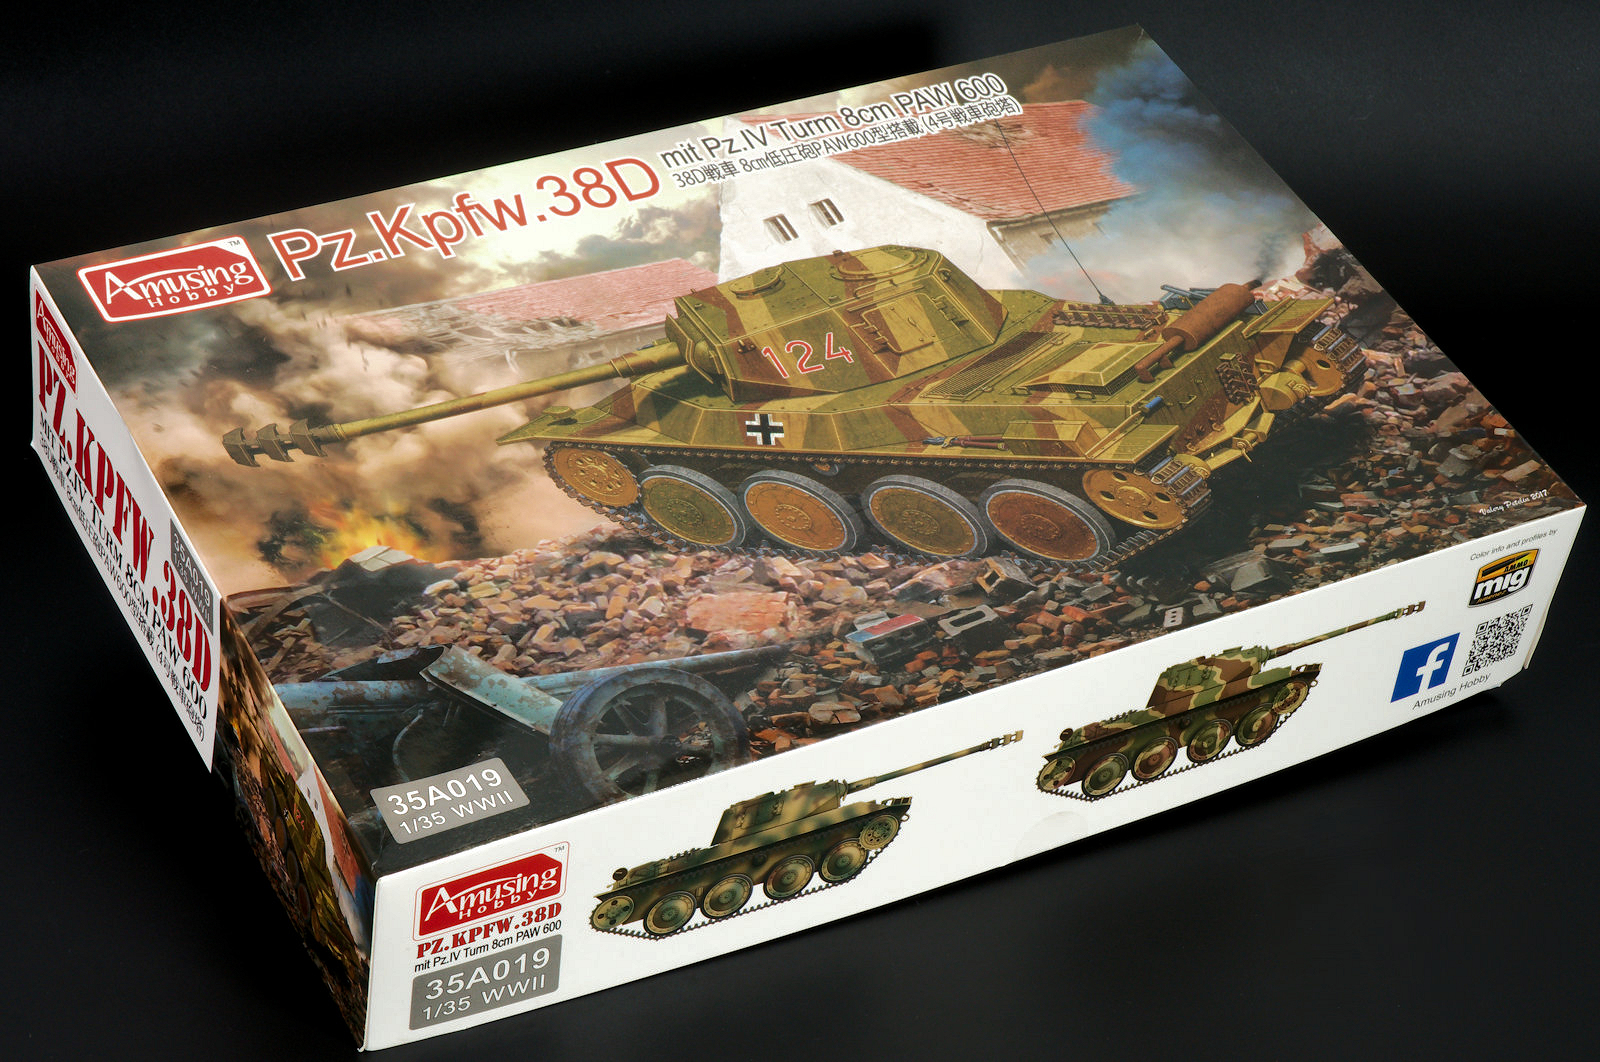 The Modelling News: In-Boxed:1/35th scale Pz Kpfw 38D mitt